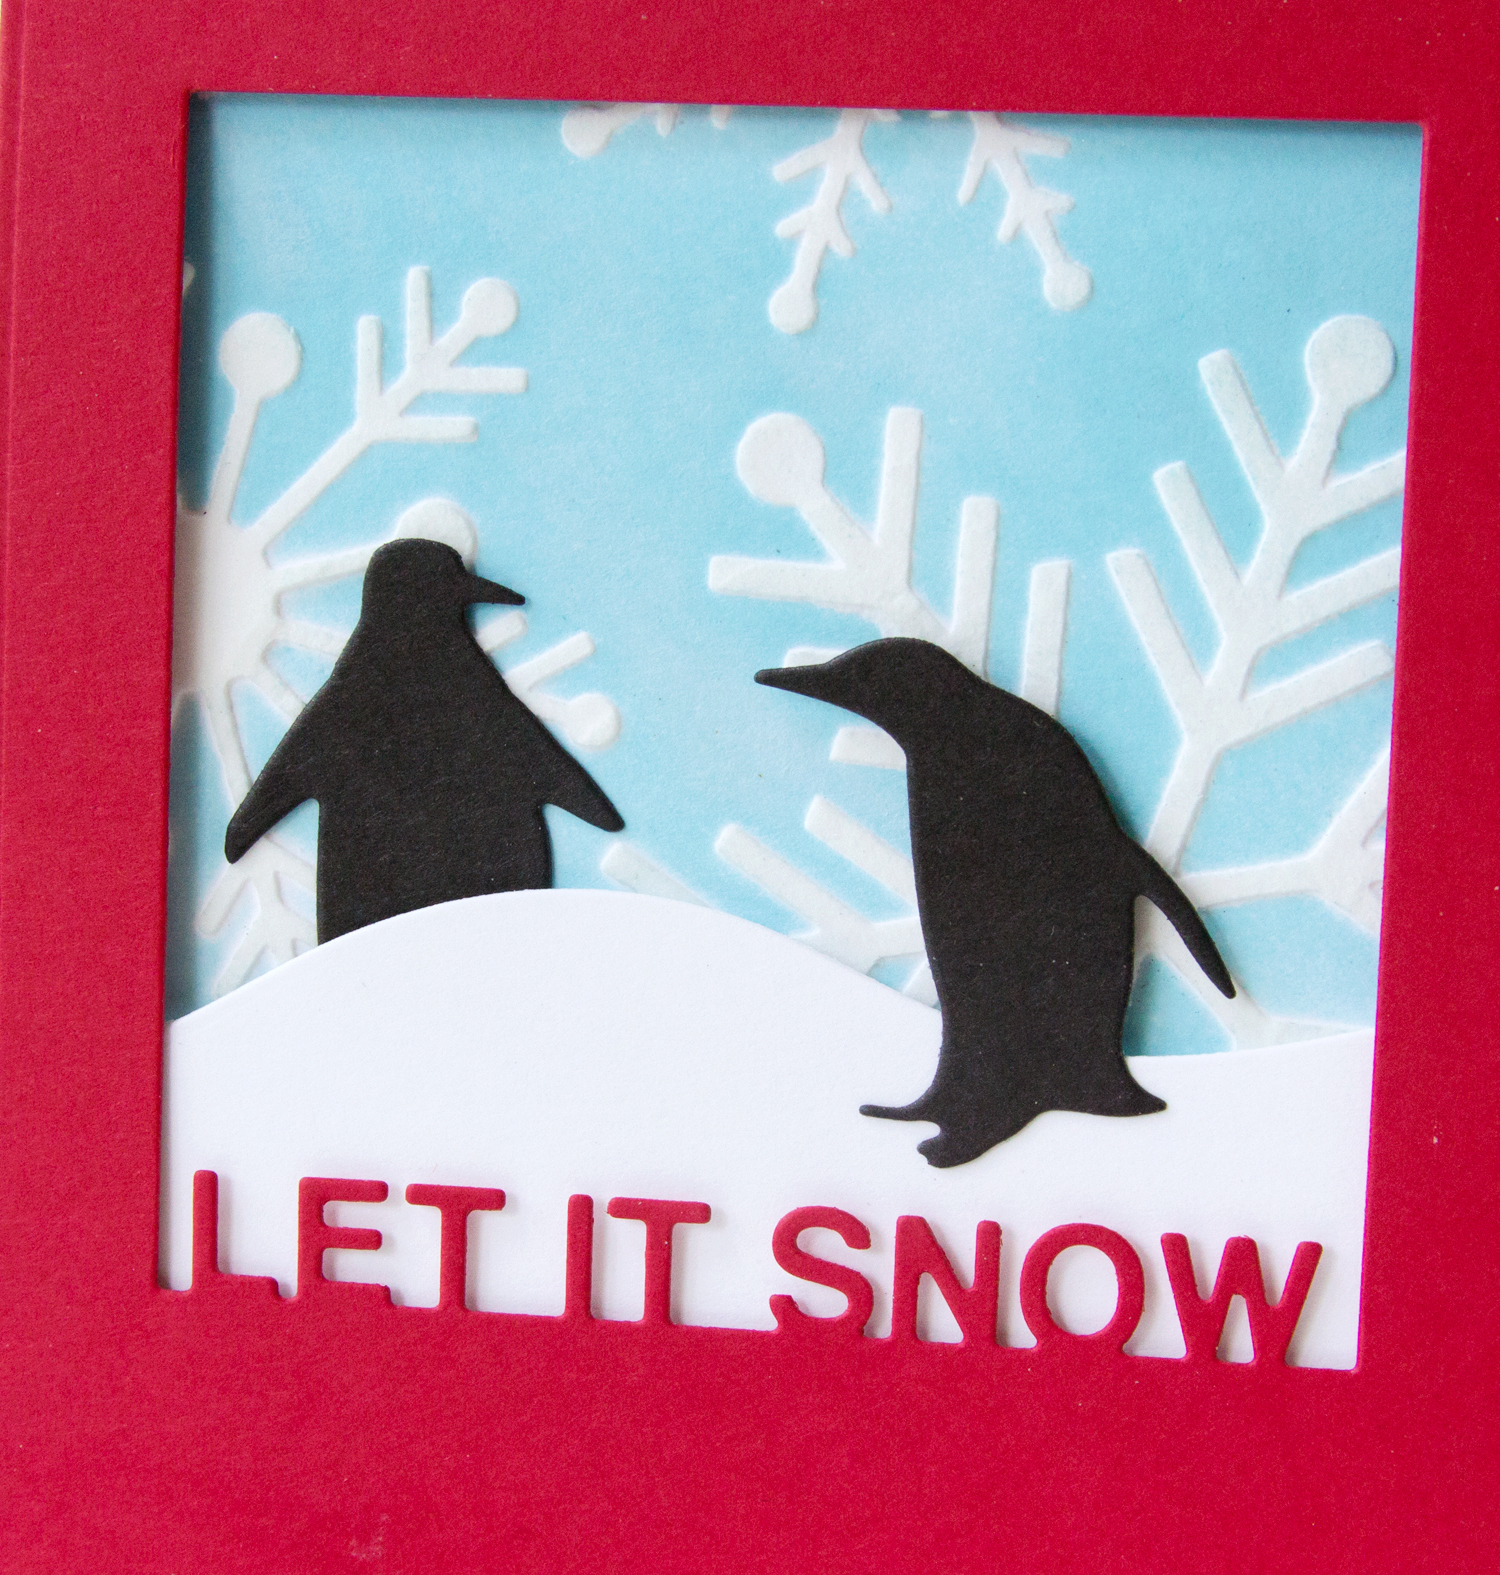 Let It Snow - Echo Park Snowflakes #1 Stencil